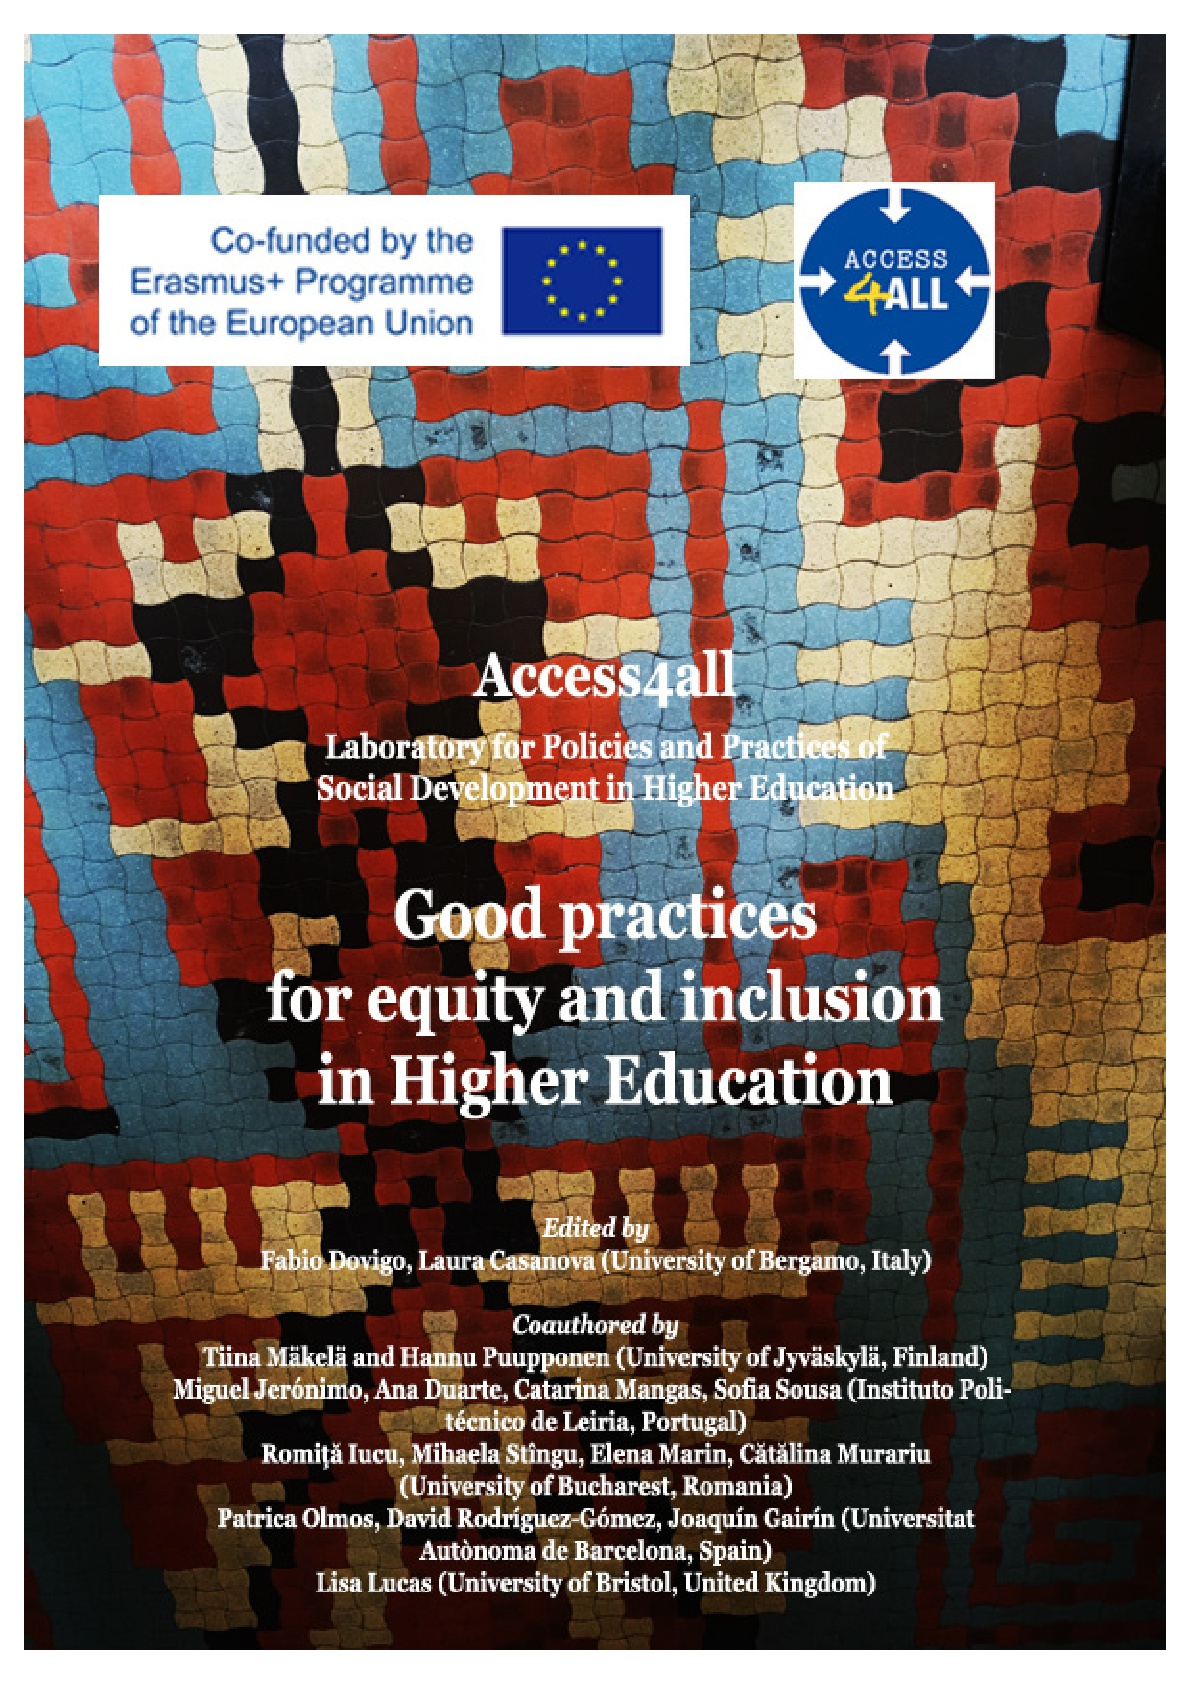 Good practices for equity and inclusion in Higher Education.